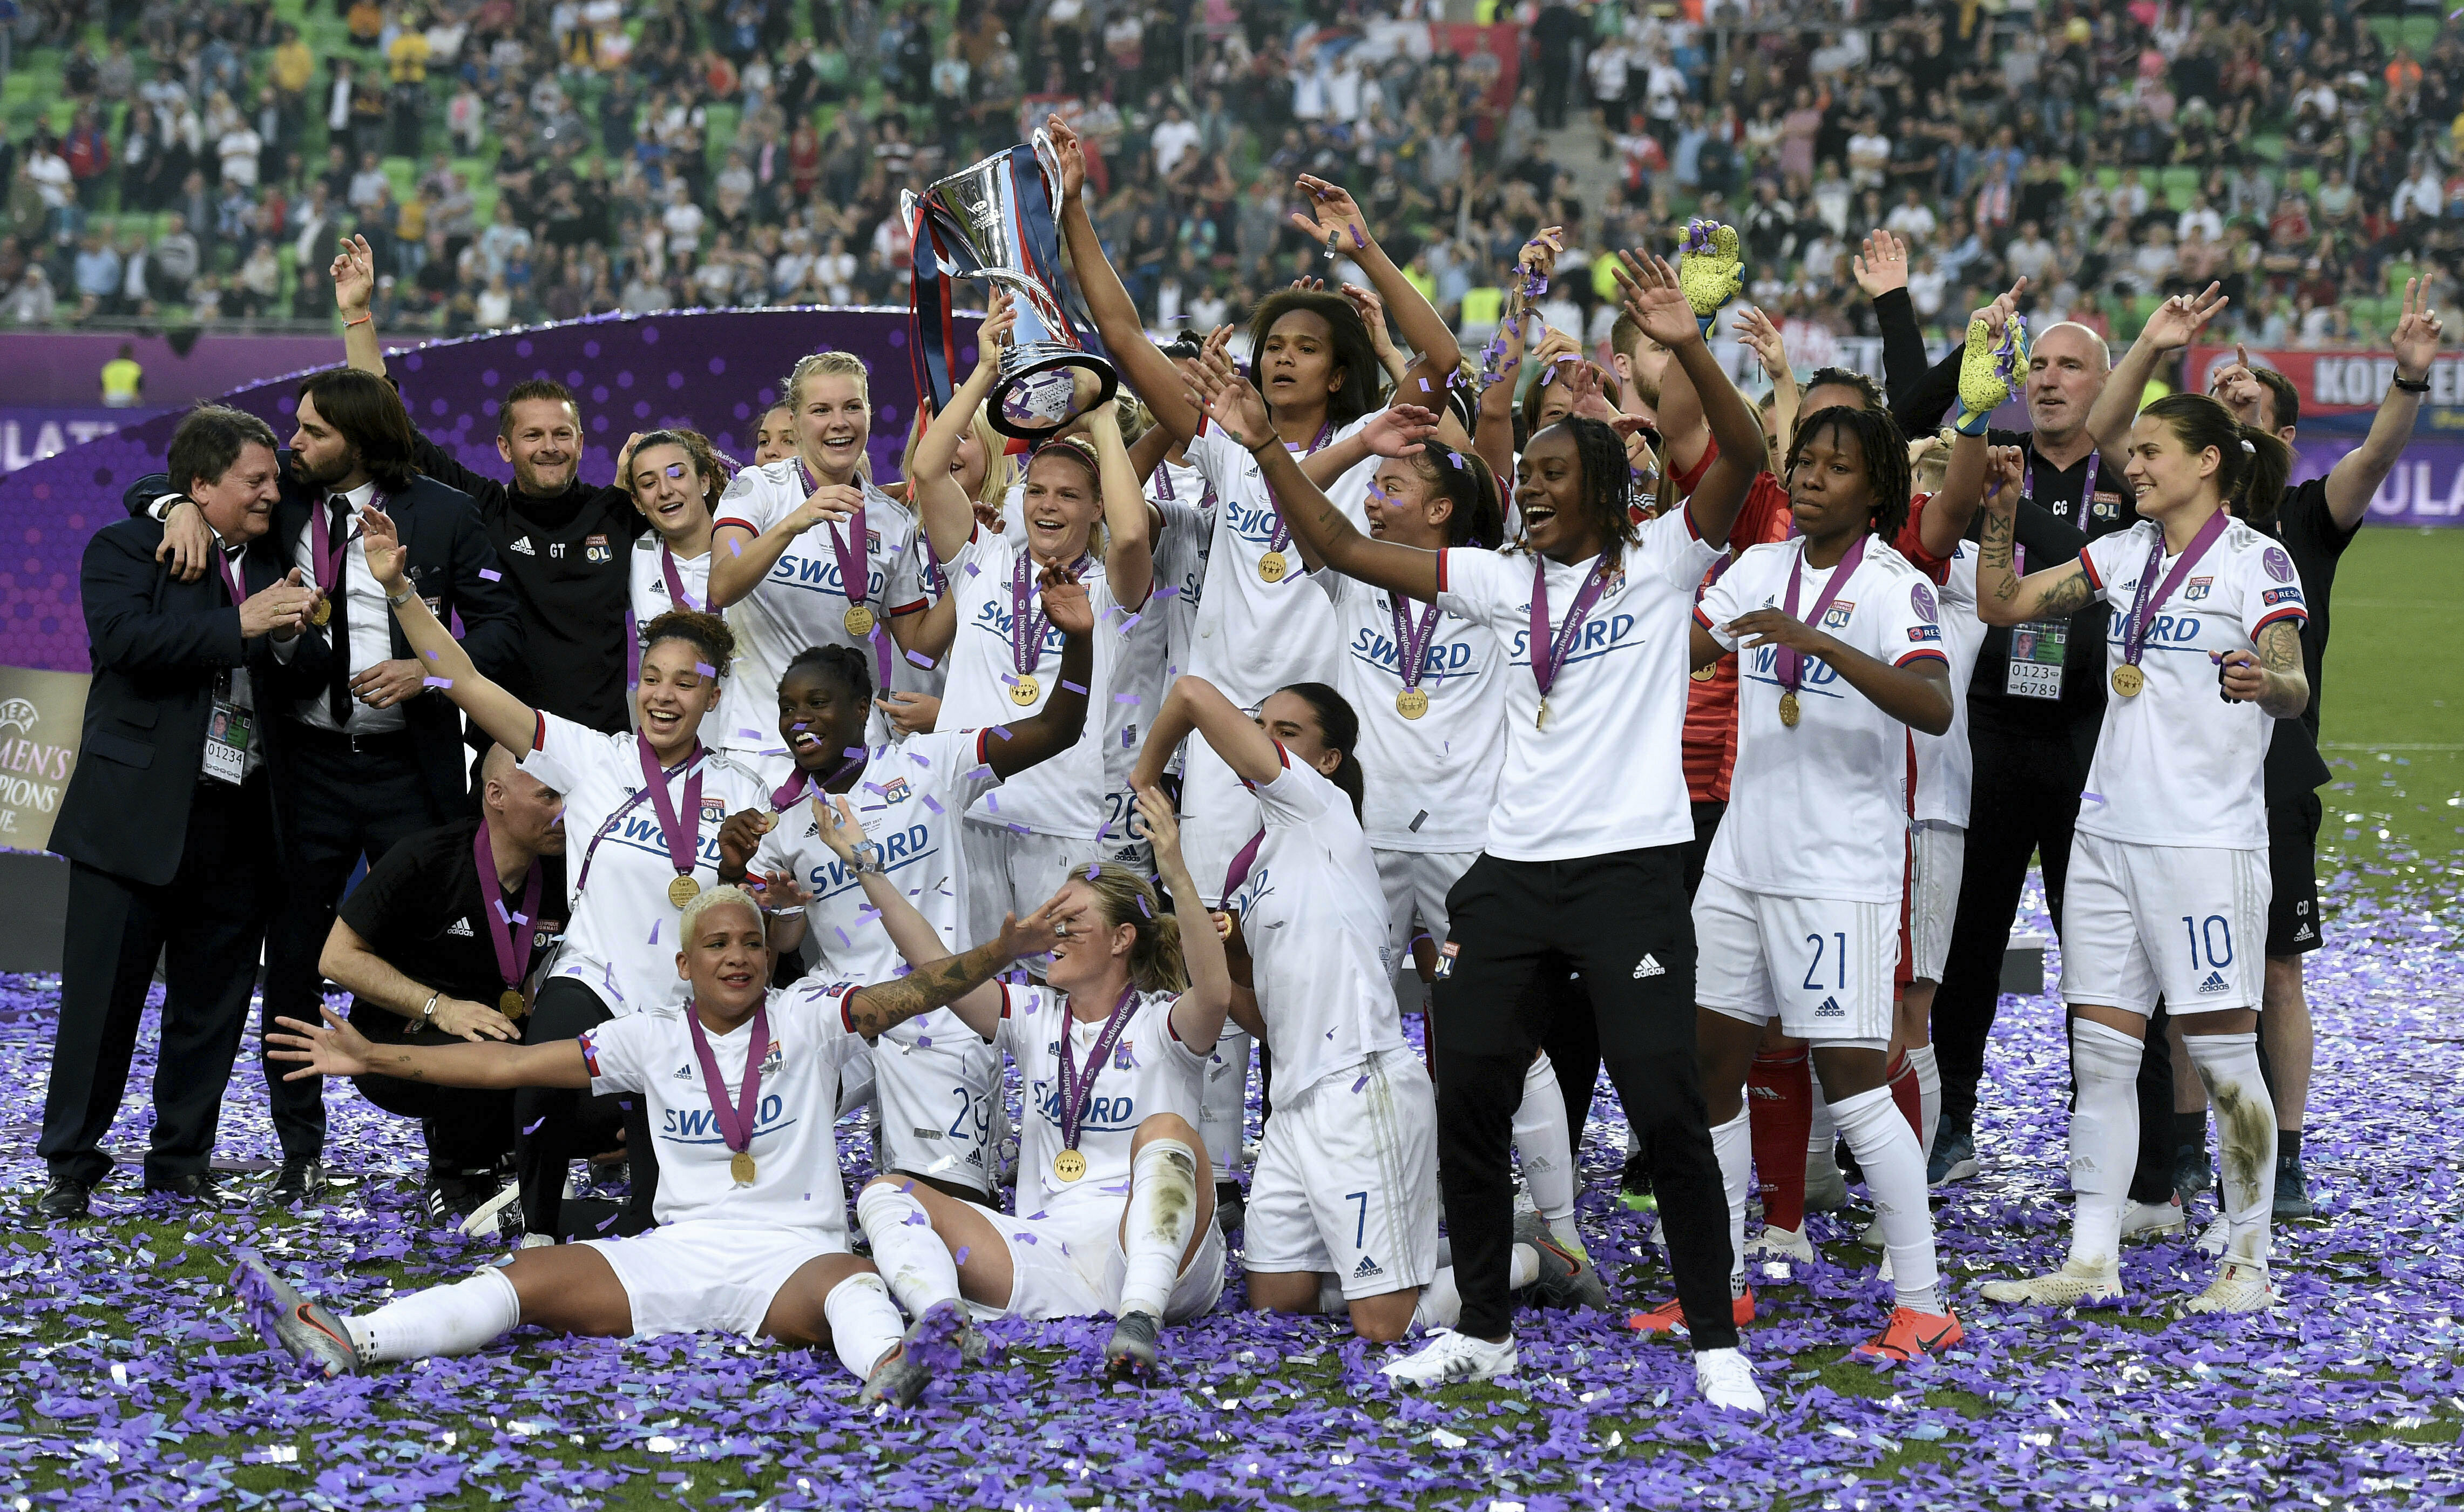 Uefa womens champions league betting previews sports betting terms push mowers